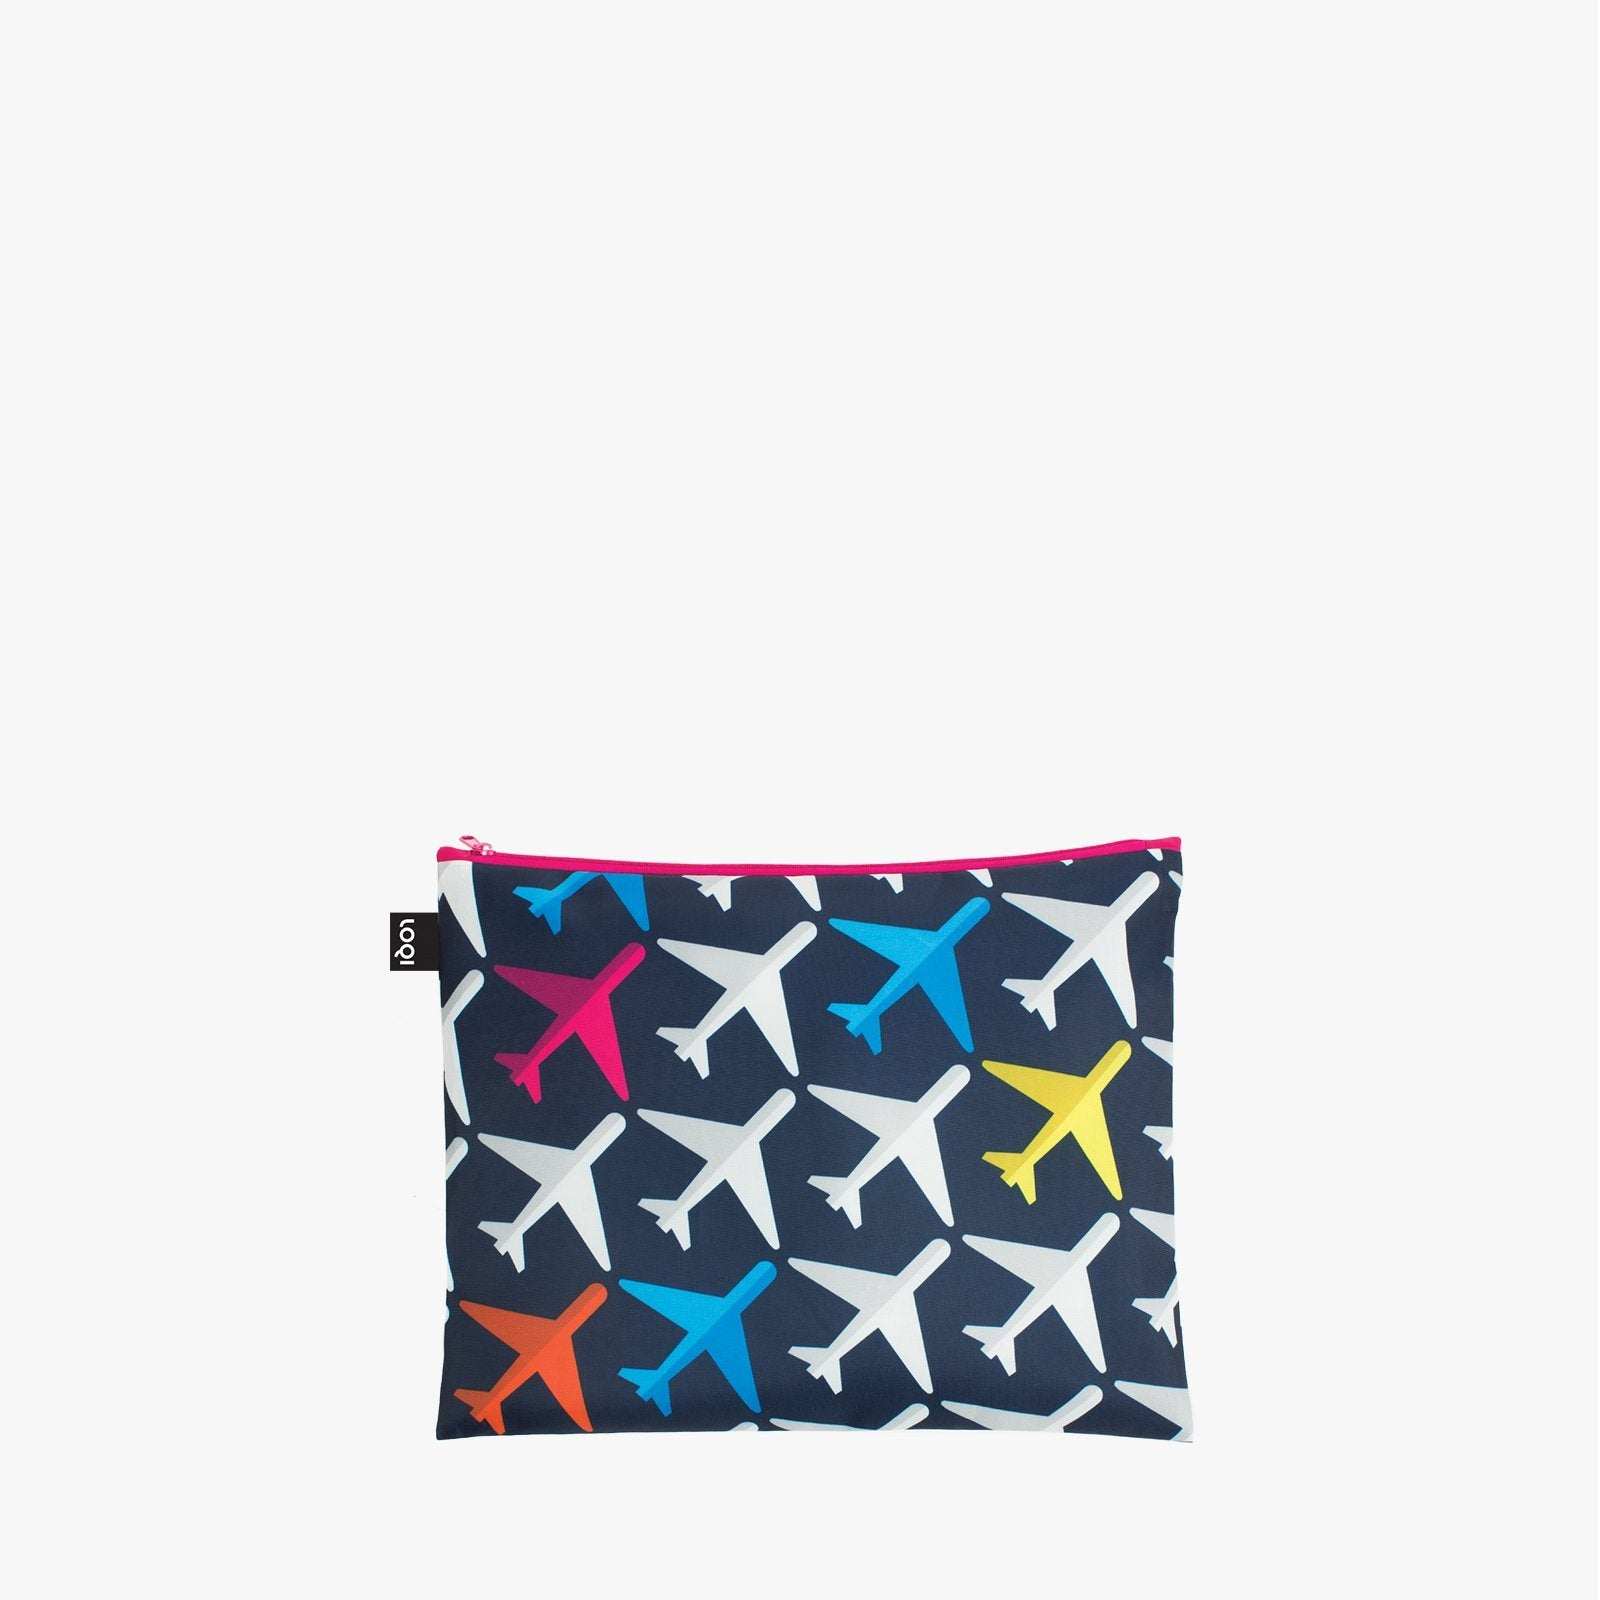 LOQI Airport Airplanes Zip Pockets